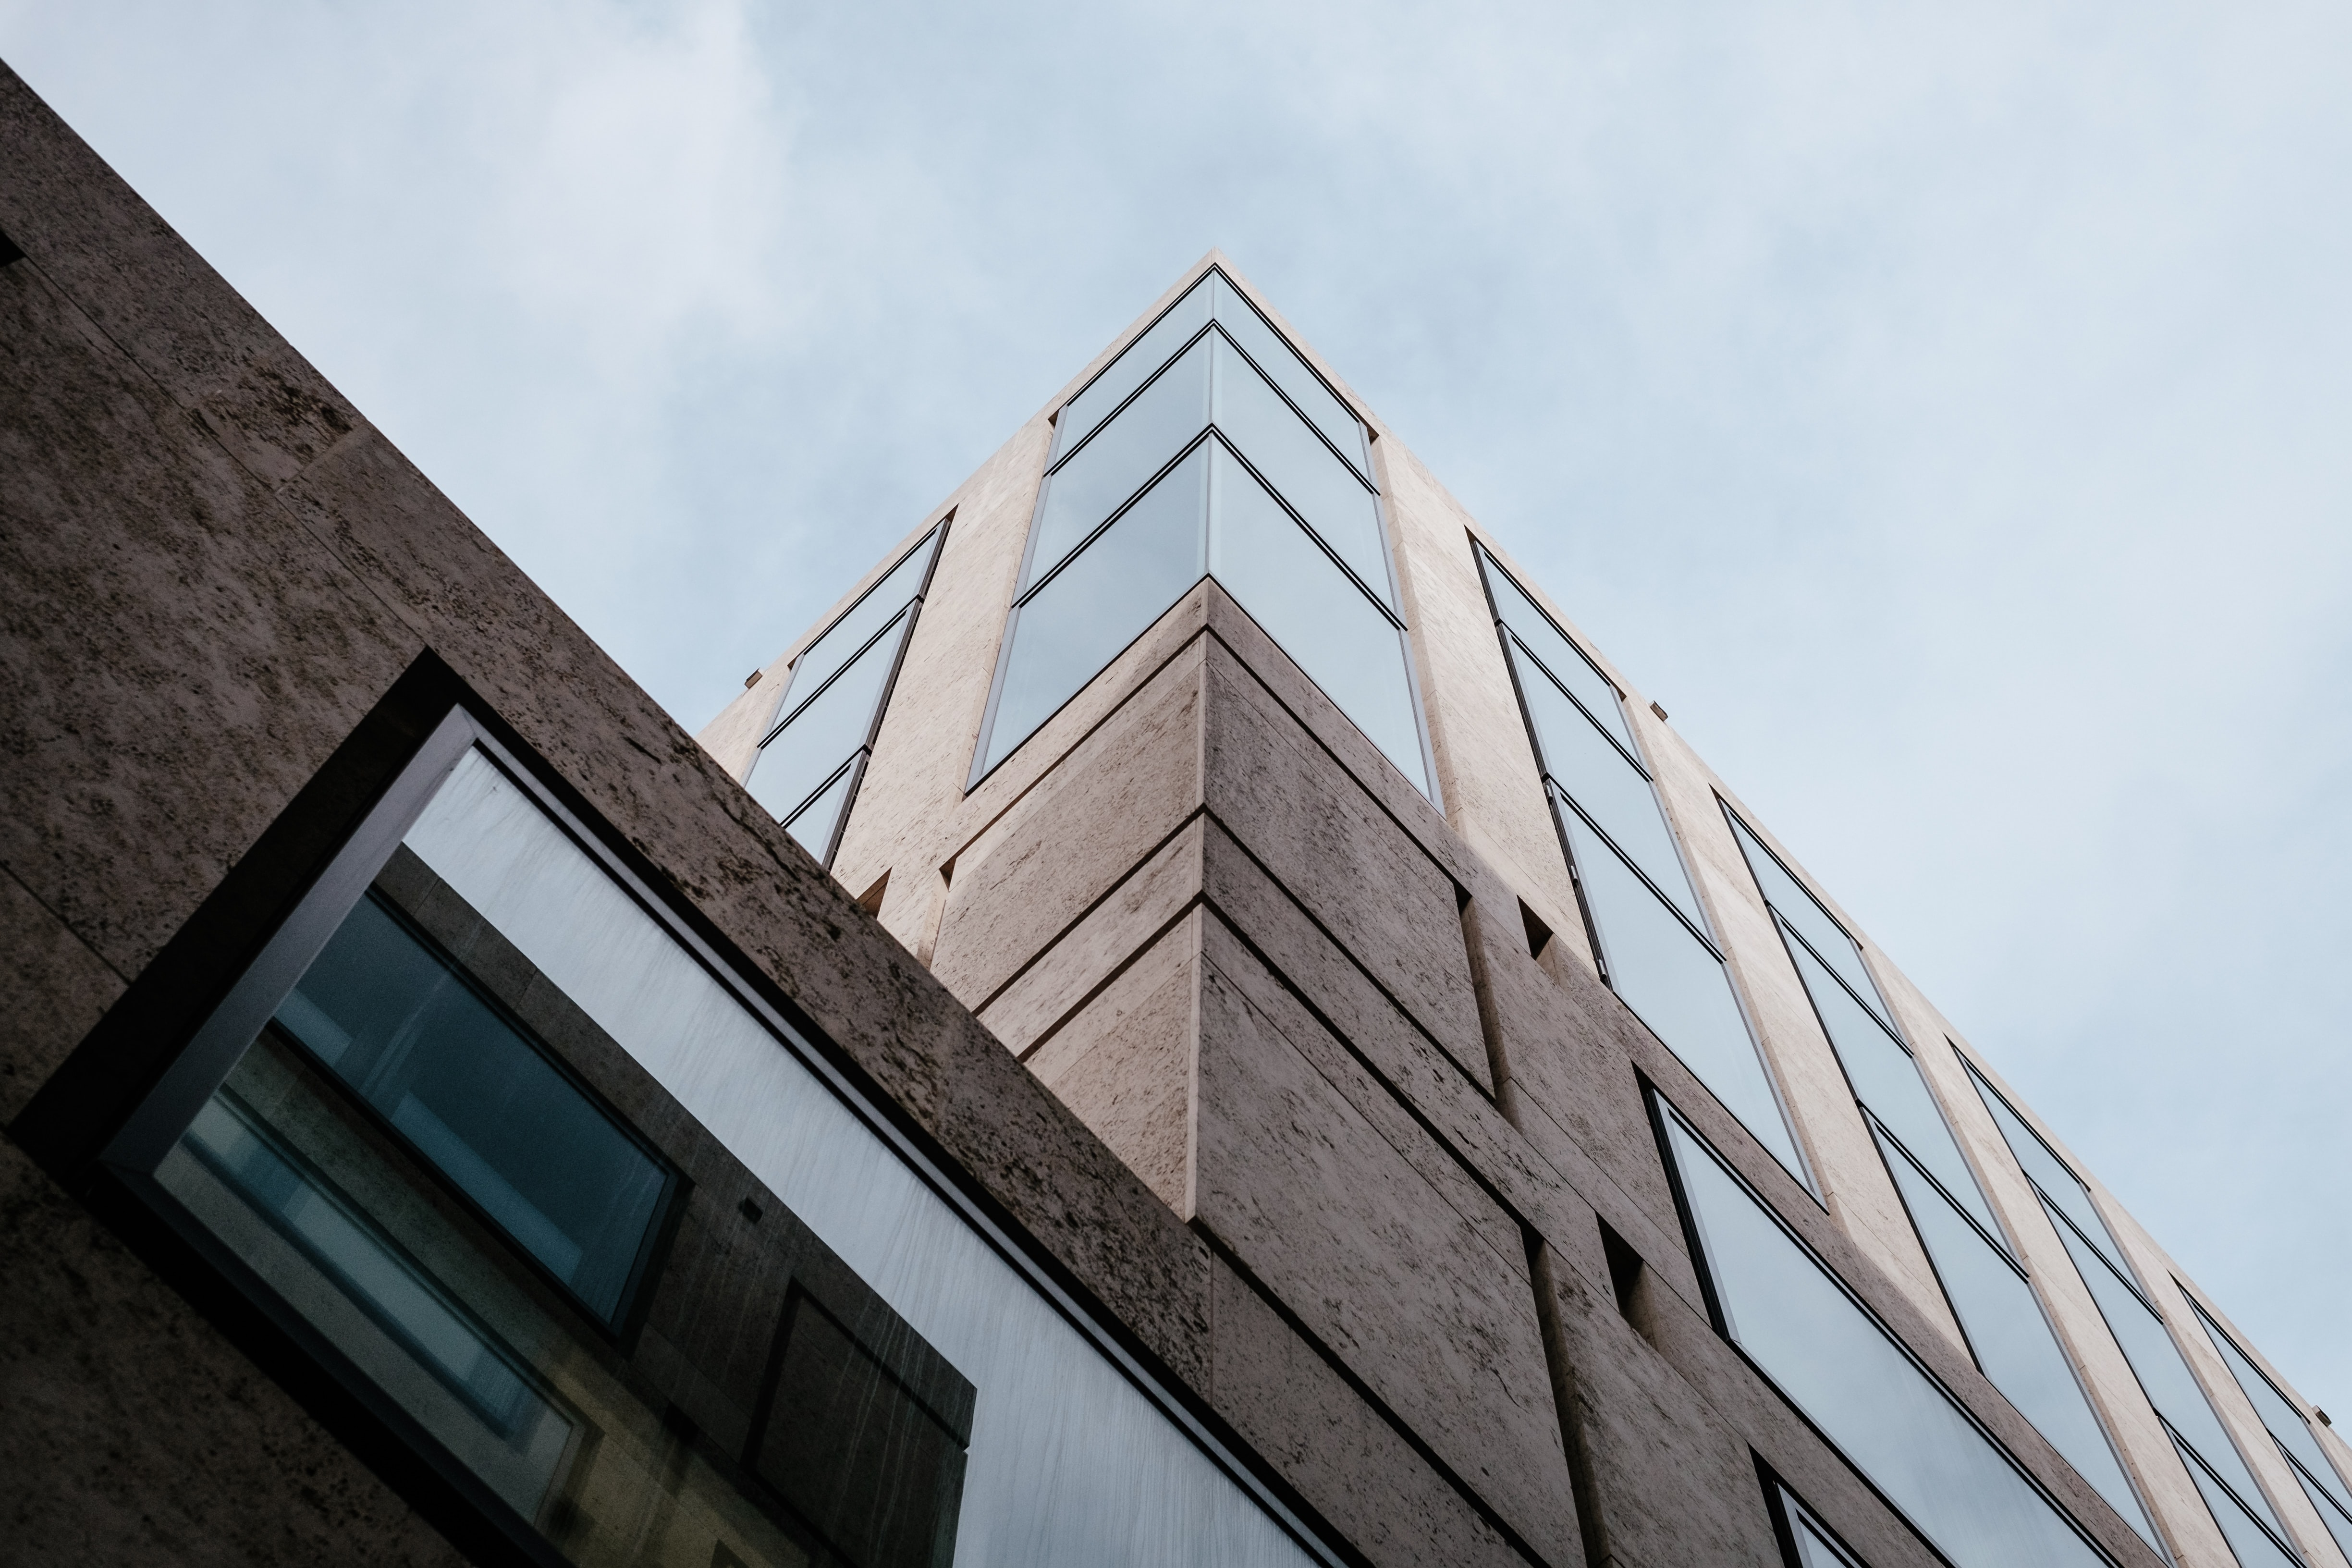 worm's eye view of gray concrete building